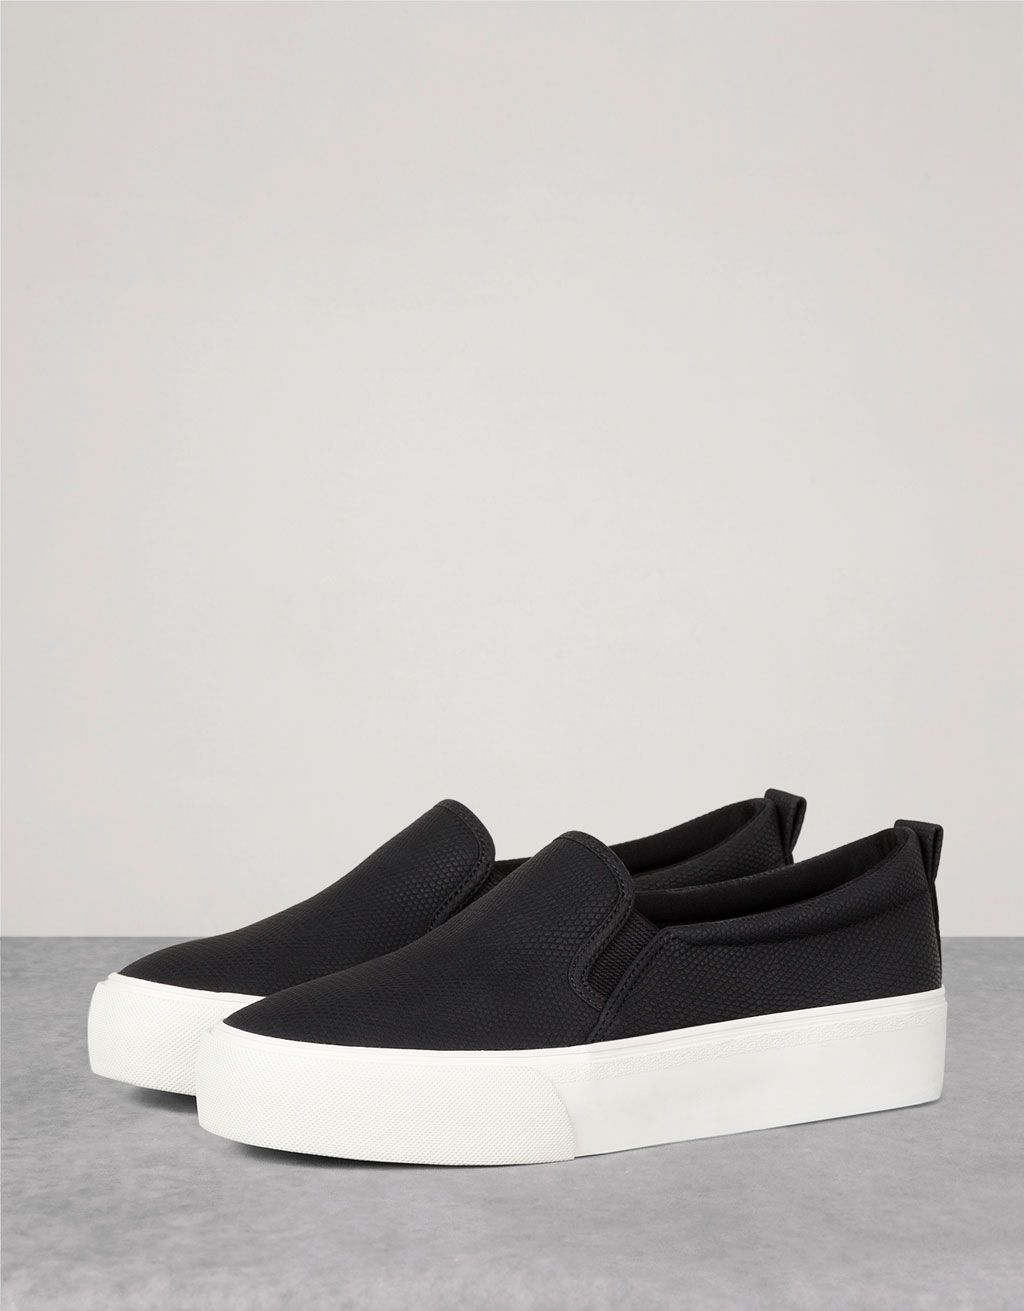 quality design a3319 22a6a no lace embossed sneakers - View All - Bershka Ukraine    giftryapp  Zapatillas Bershka,